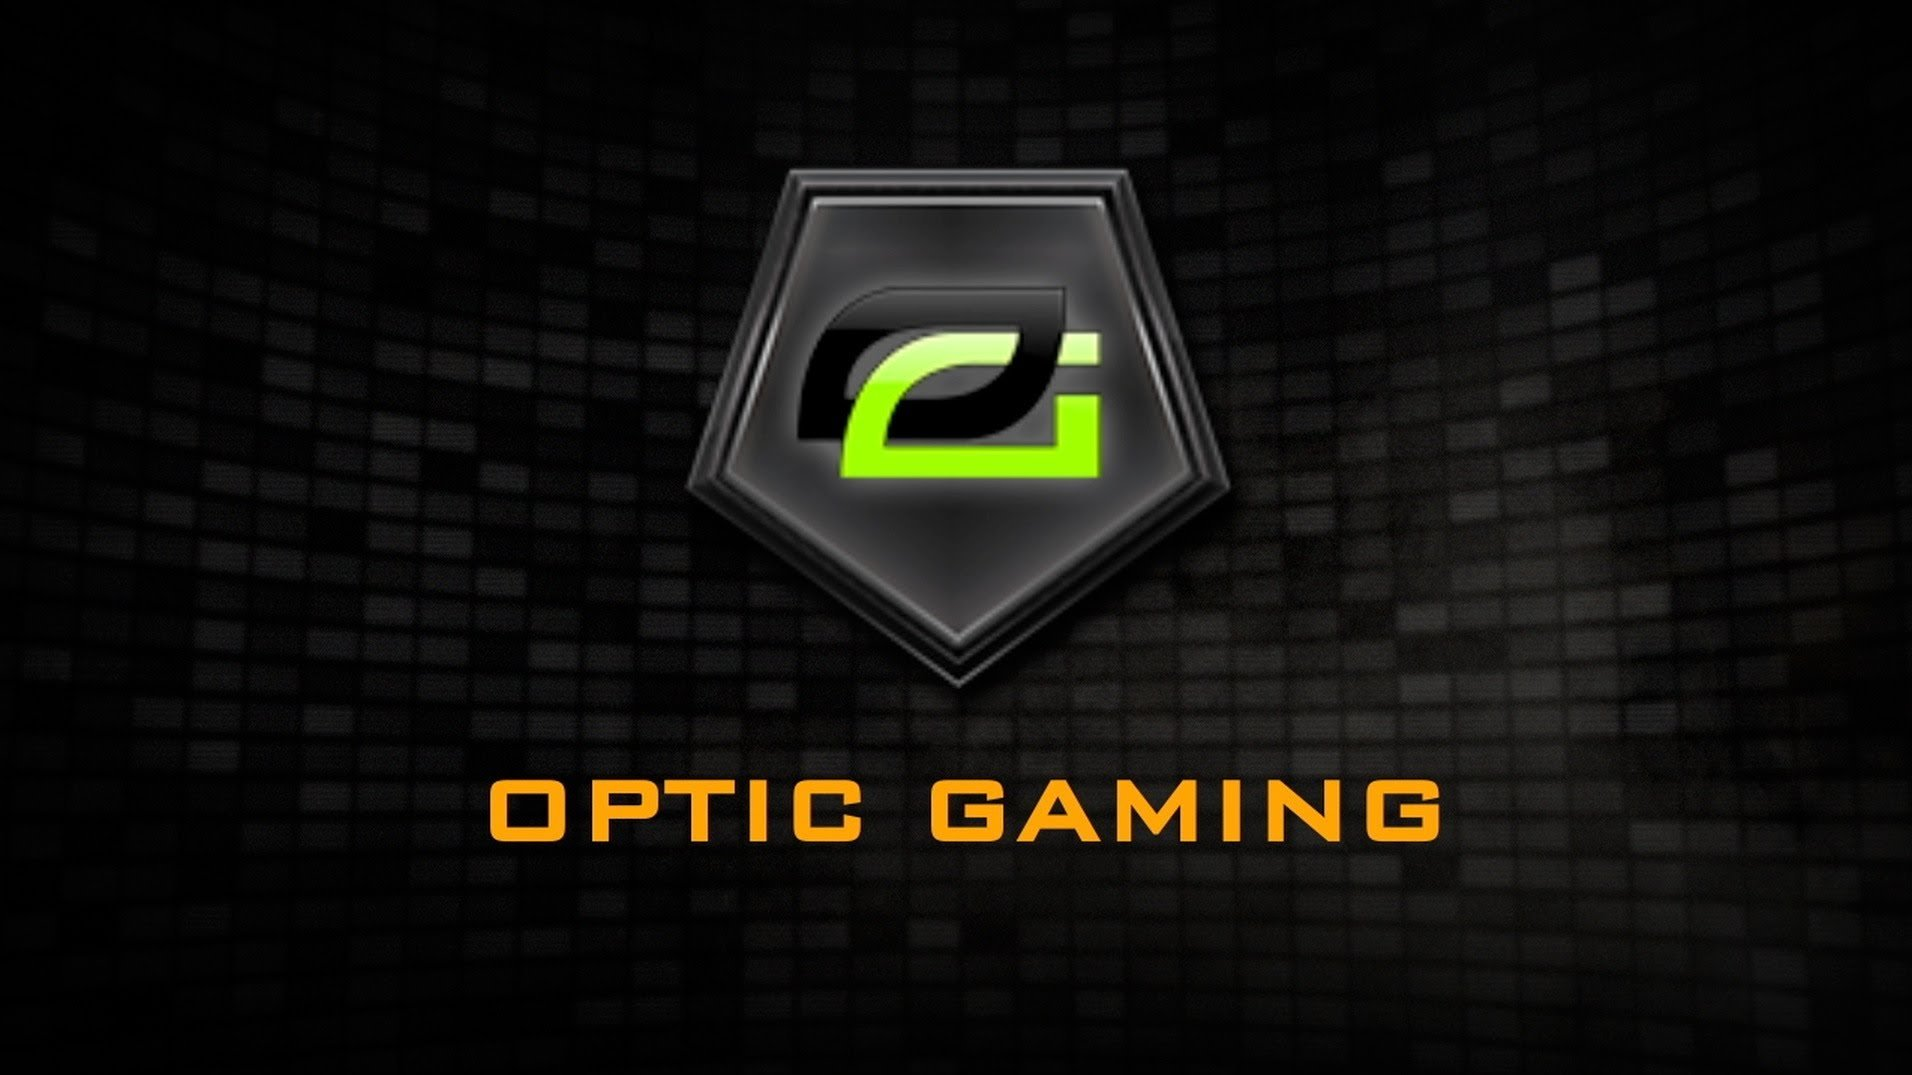 Optic Gaming Wallpaper - WallpaperSafari